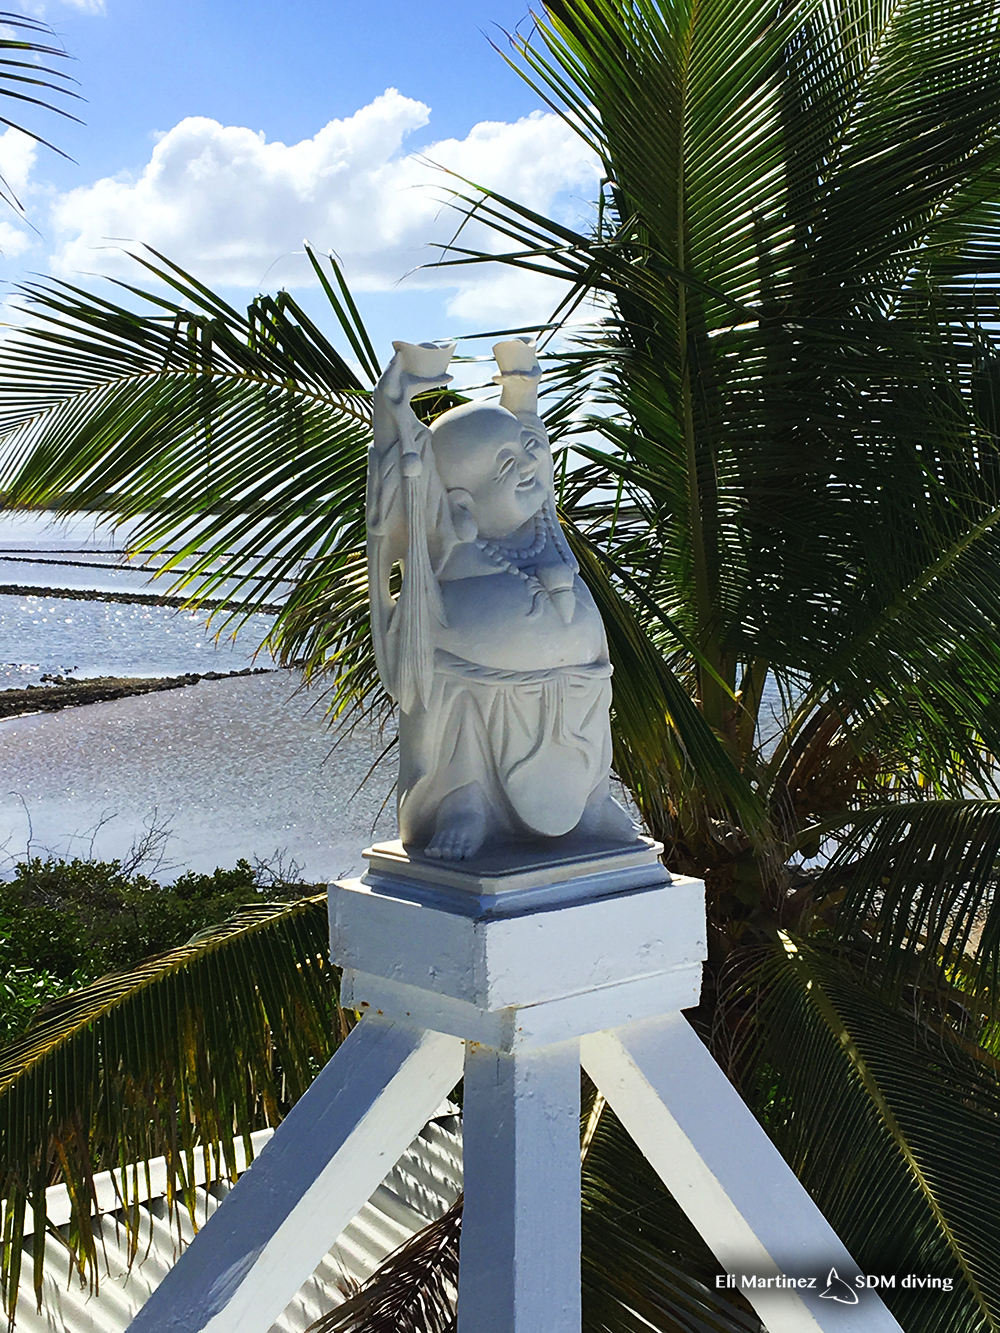 Every island needs a friendly Budda, offering blessings, good luck and love.